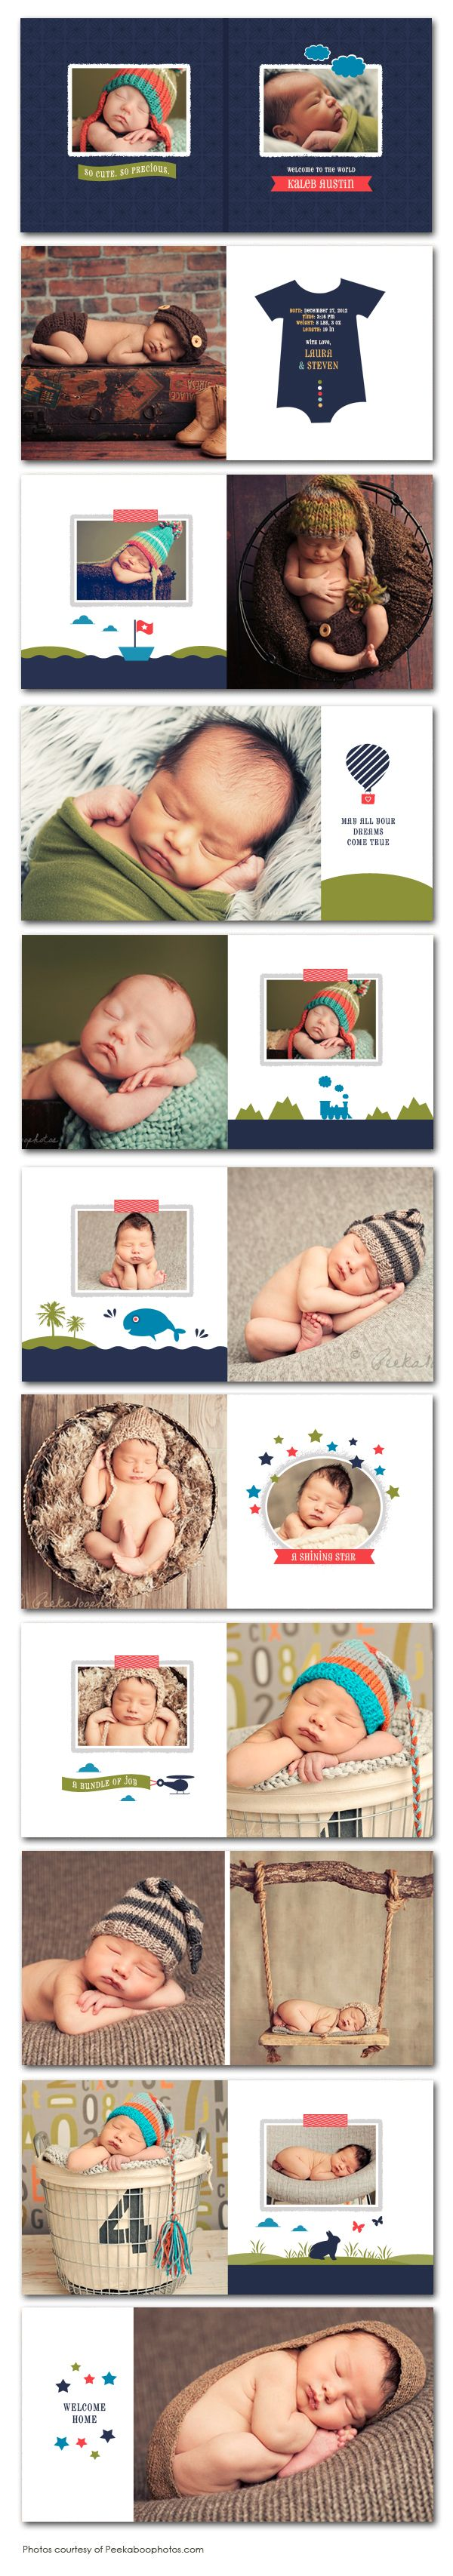 Explora 12x12 Album Book Newborn photography Newborn album book template